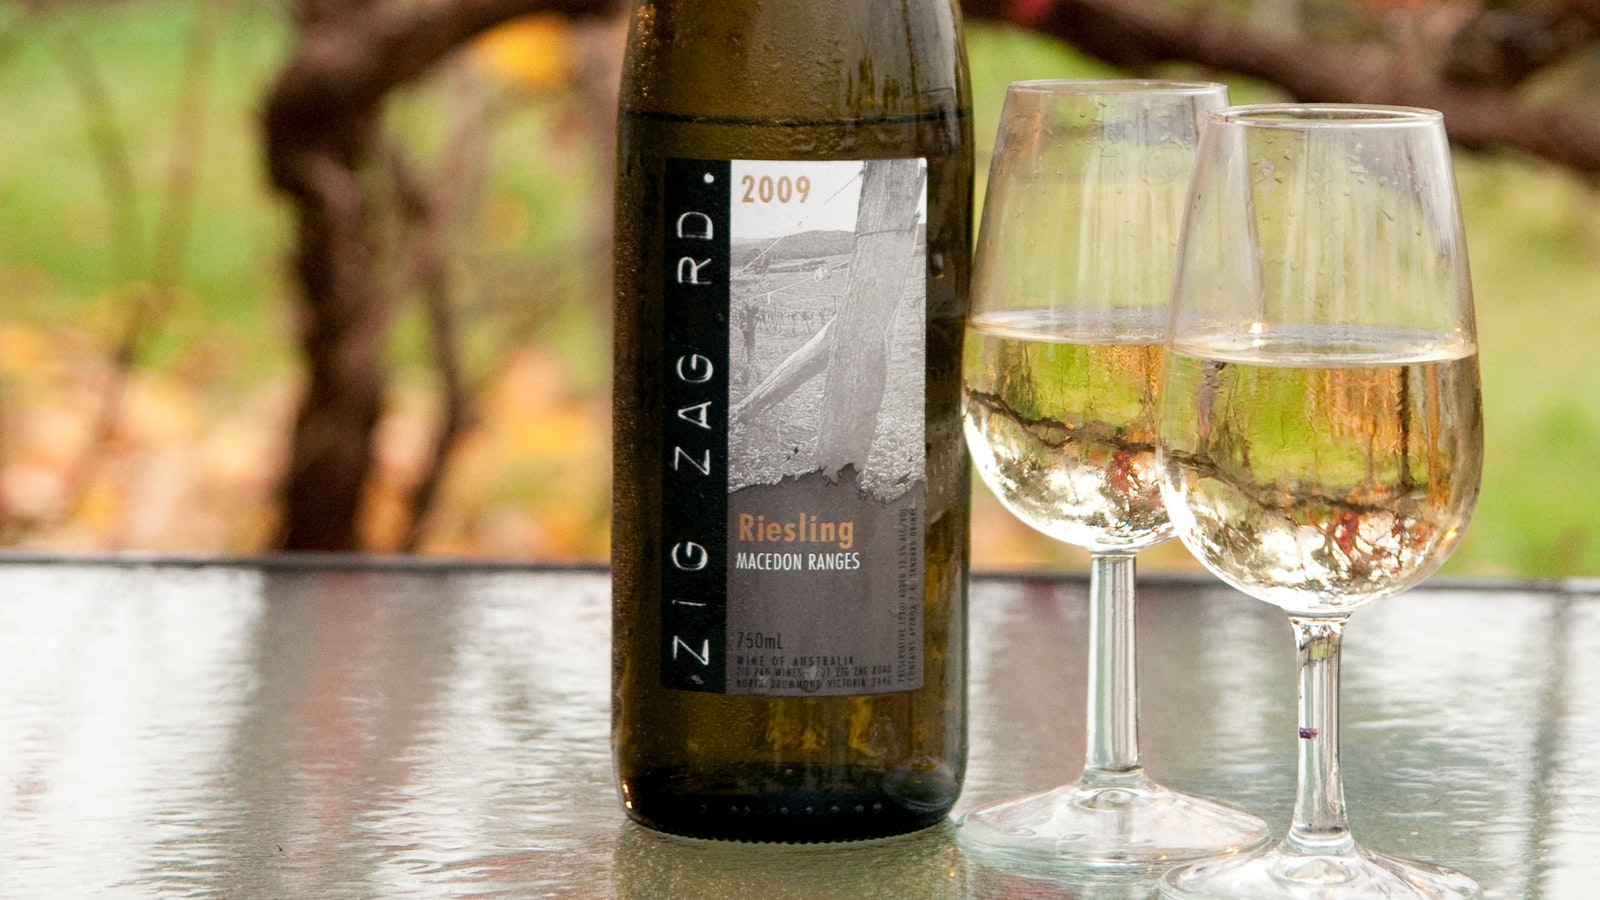 Award winning Riesling. Crisp and fresh with citrus tones